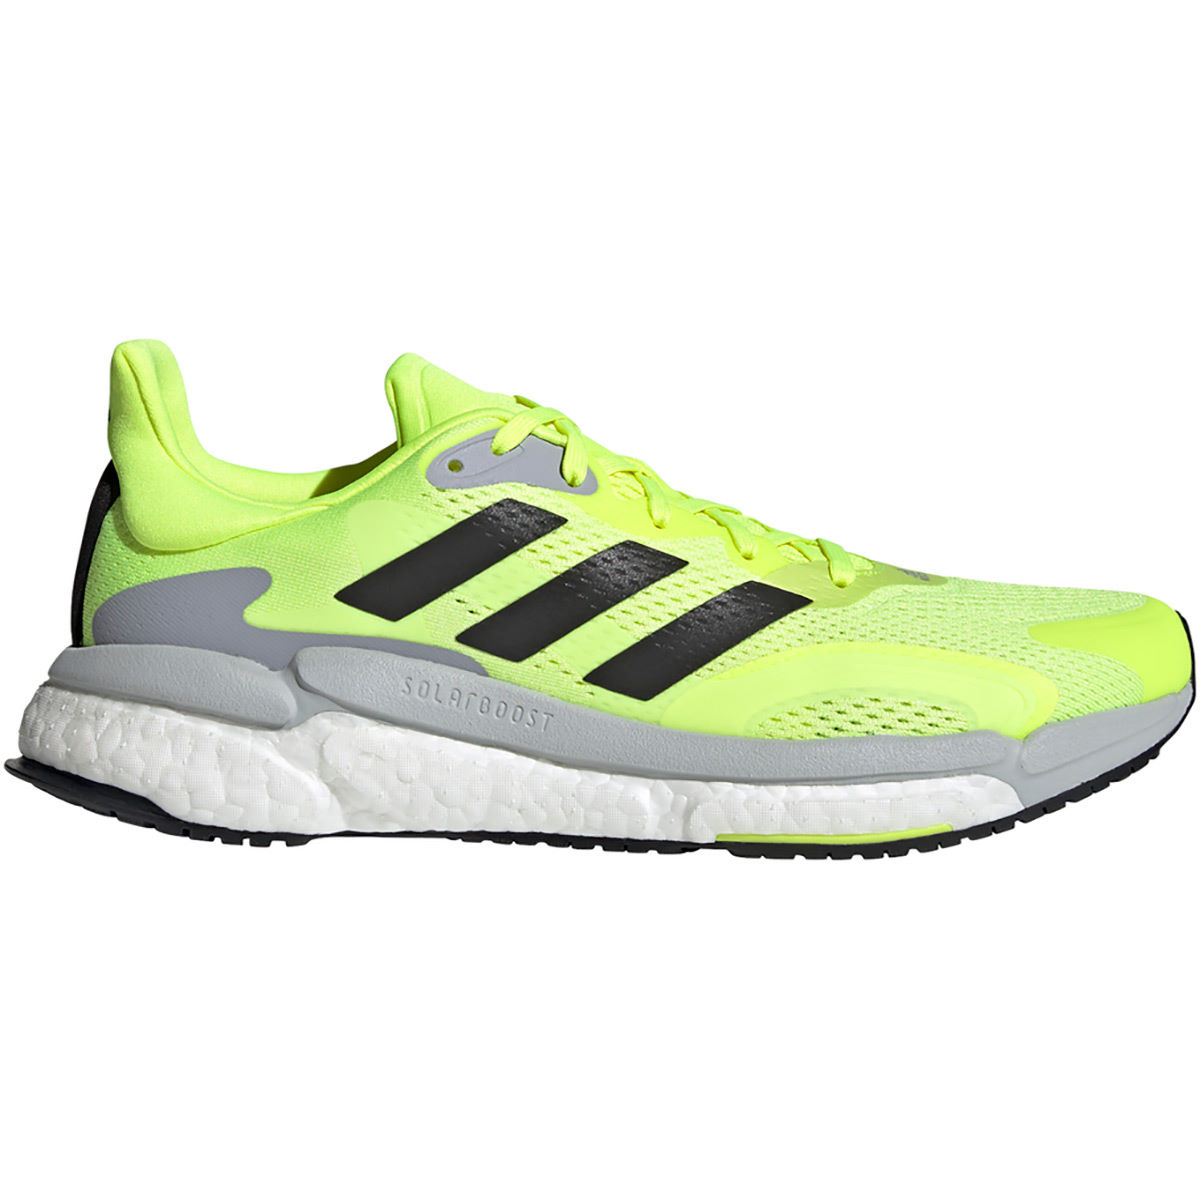 Adidas Solarboost 3 Running Shoes - Uk 12 Solar Yellow/core Bl